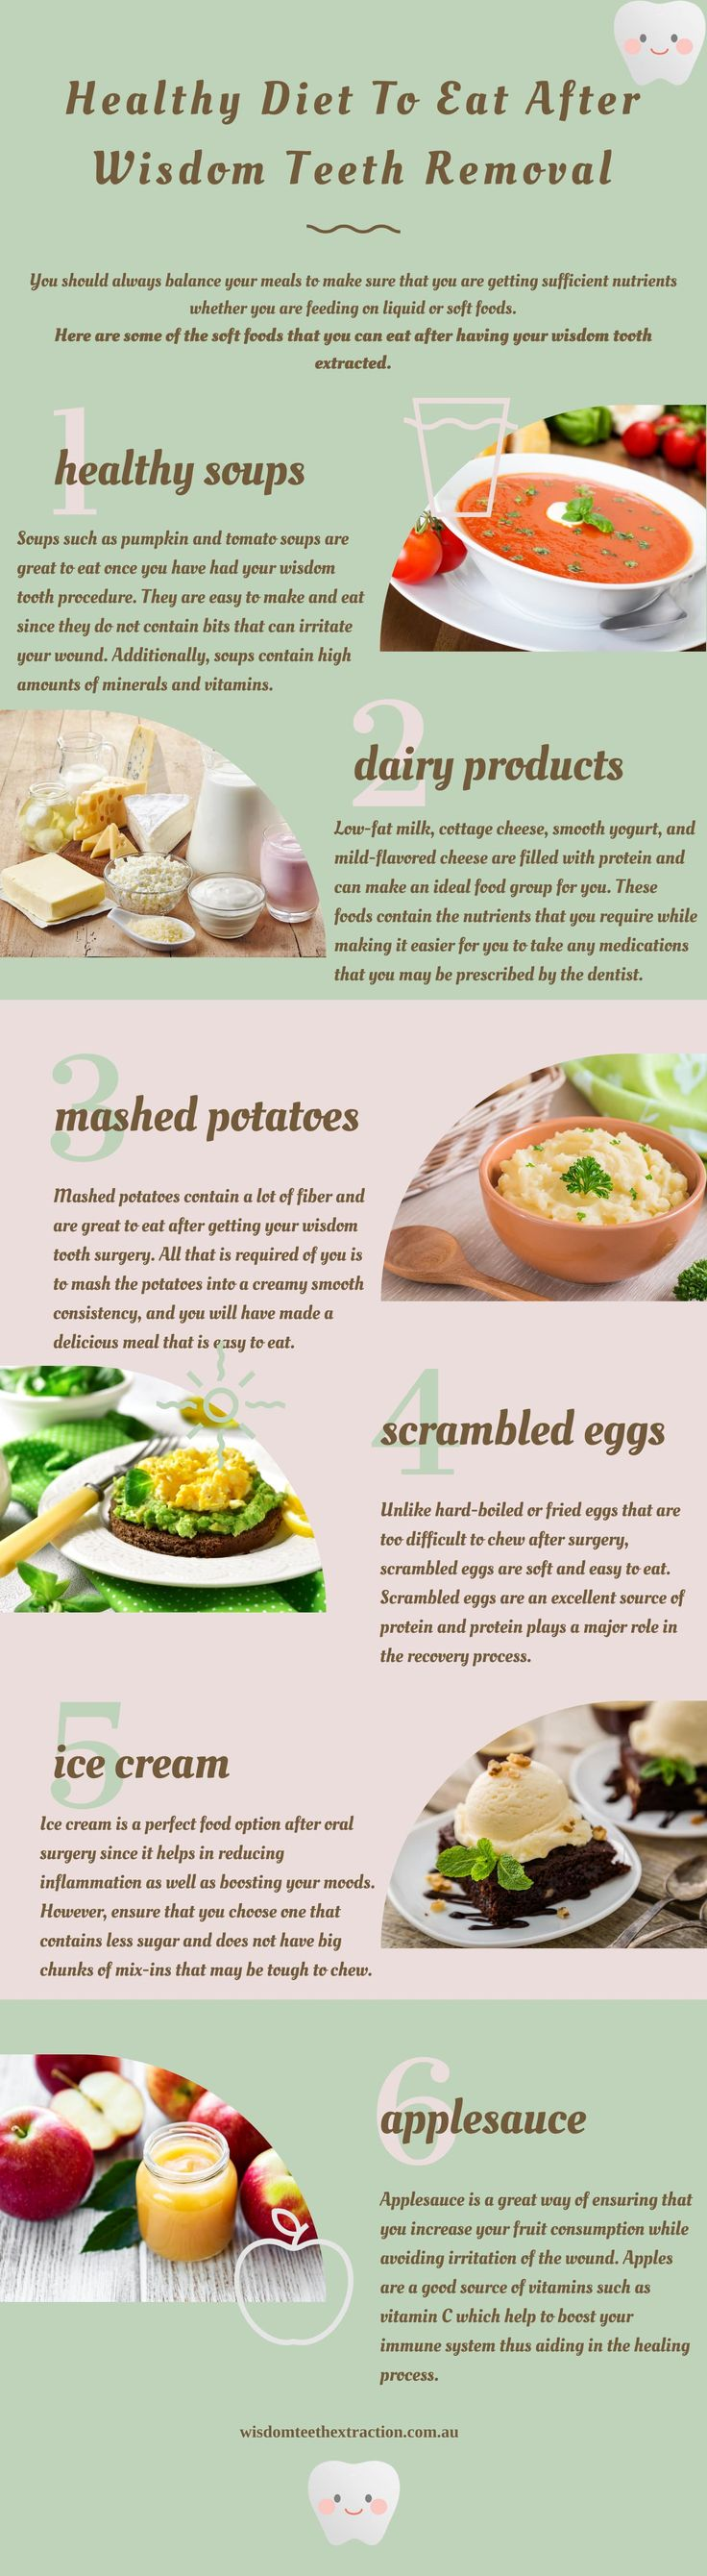 food tips after wisdom tooth removal in 2020  wisdom teeth after wisdom teeth removal wisdom